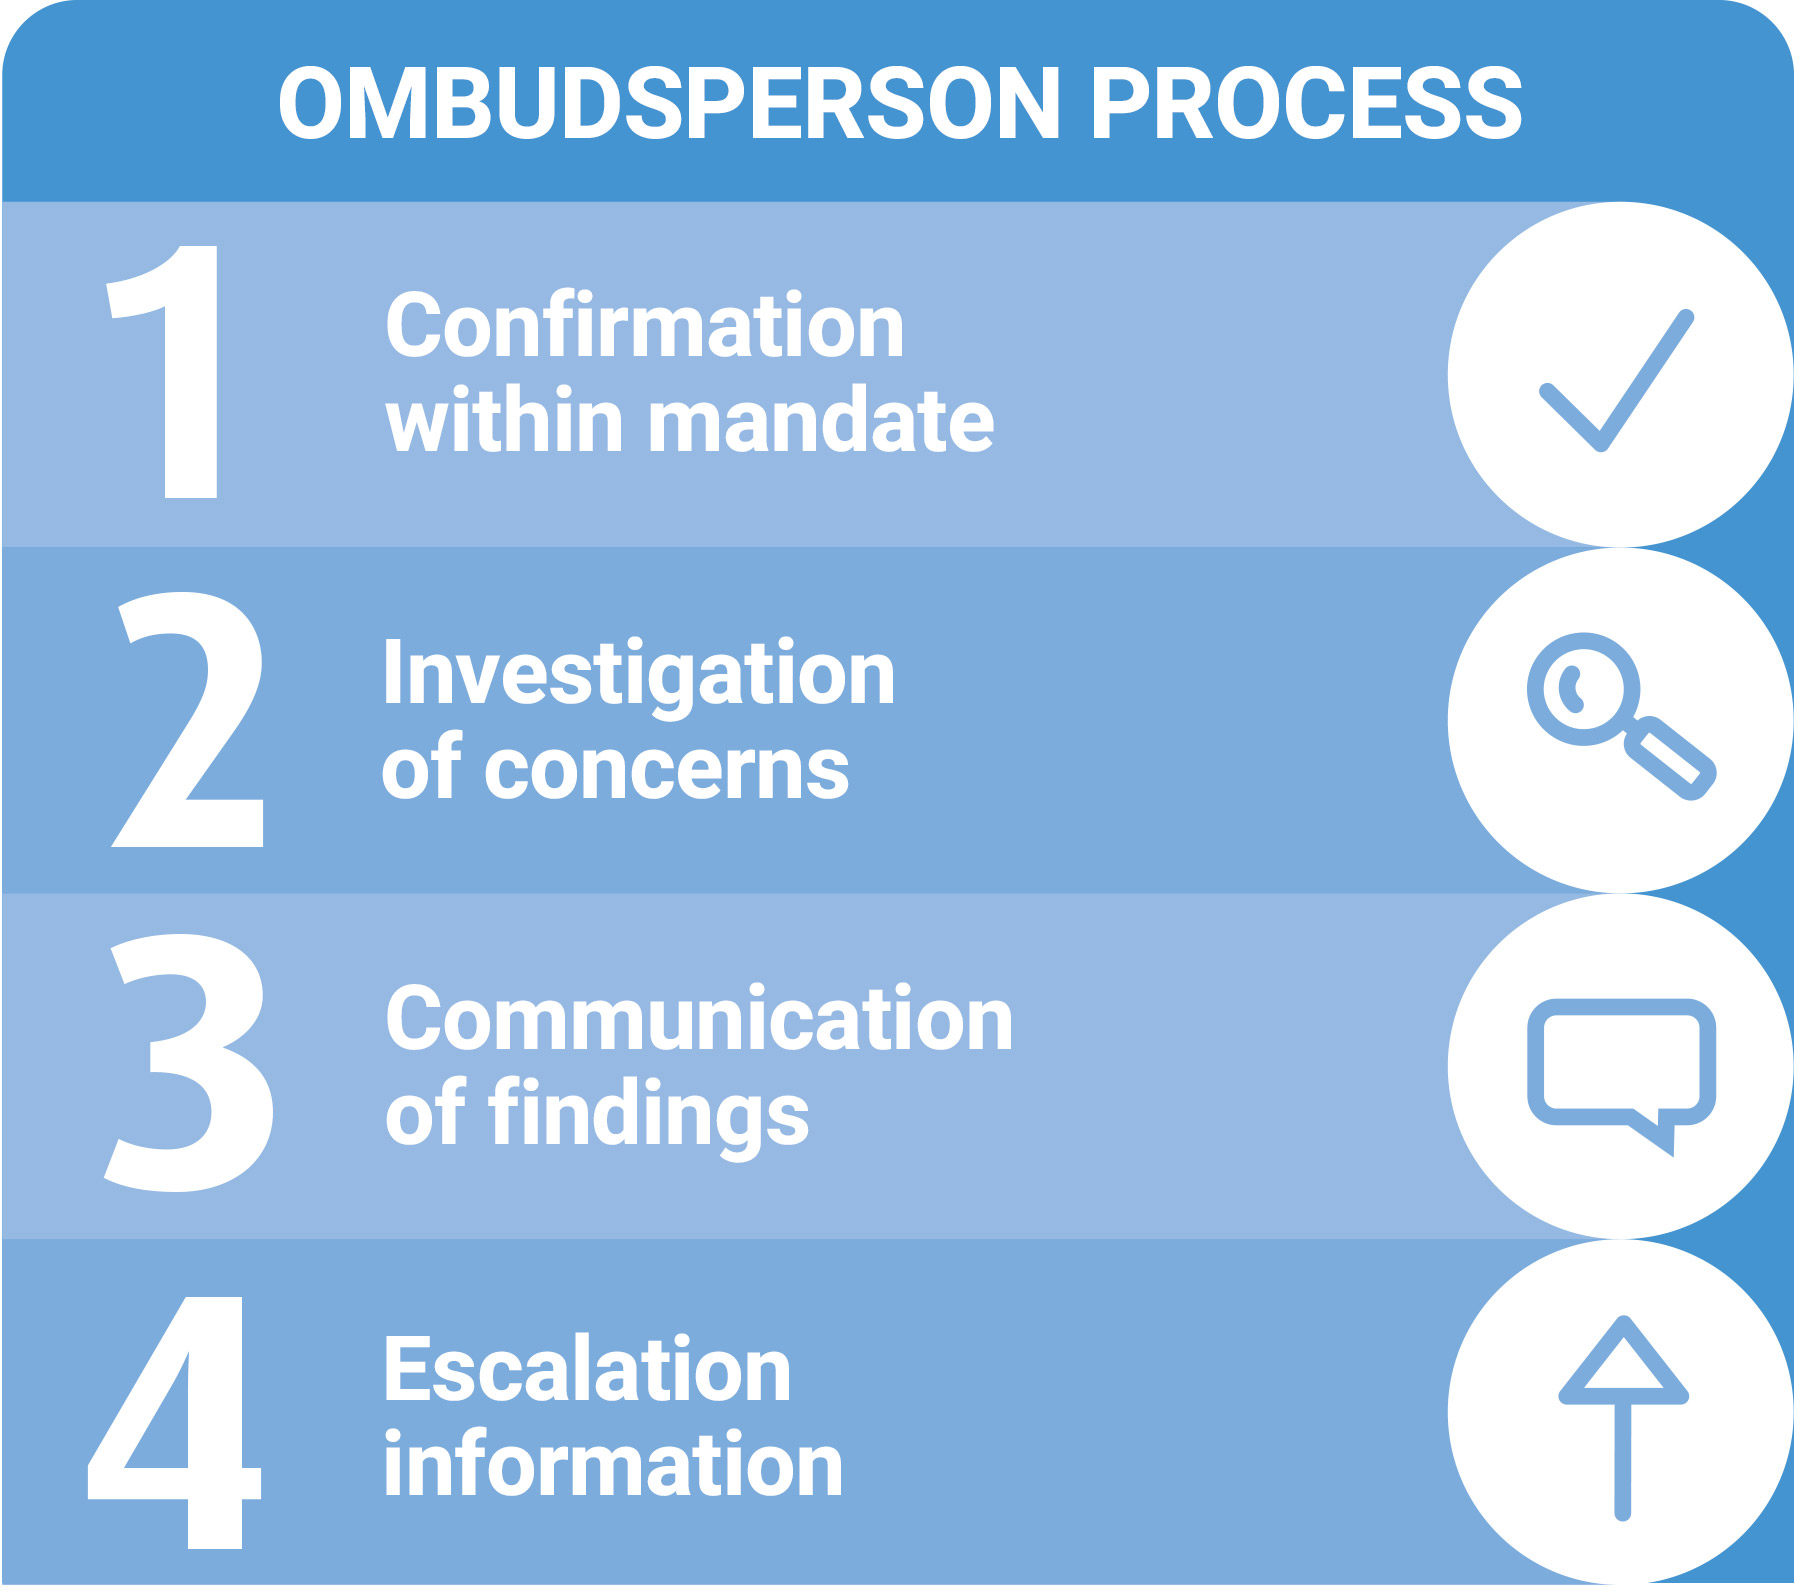 Ombudsperson Process showing 4 steps: 1. Confirmation within mandate 2. Investigation of concerns 3. Communication of findings 4. Escalation information